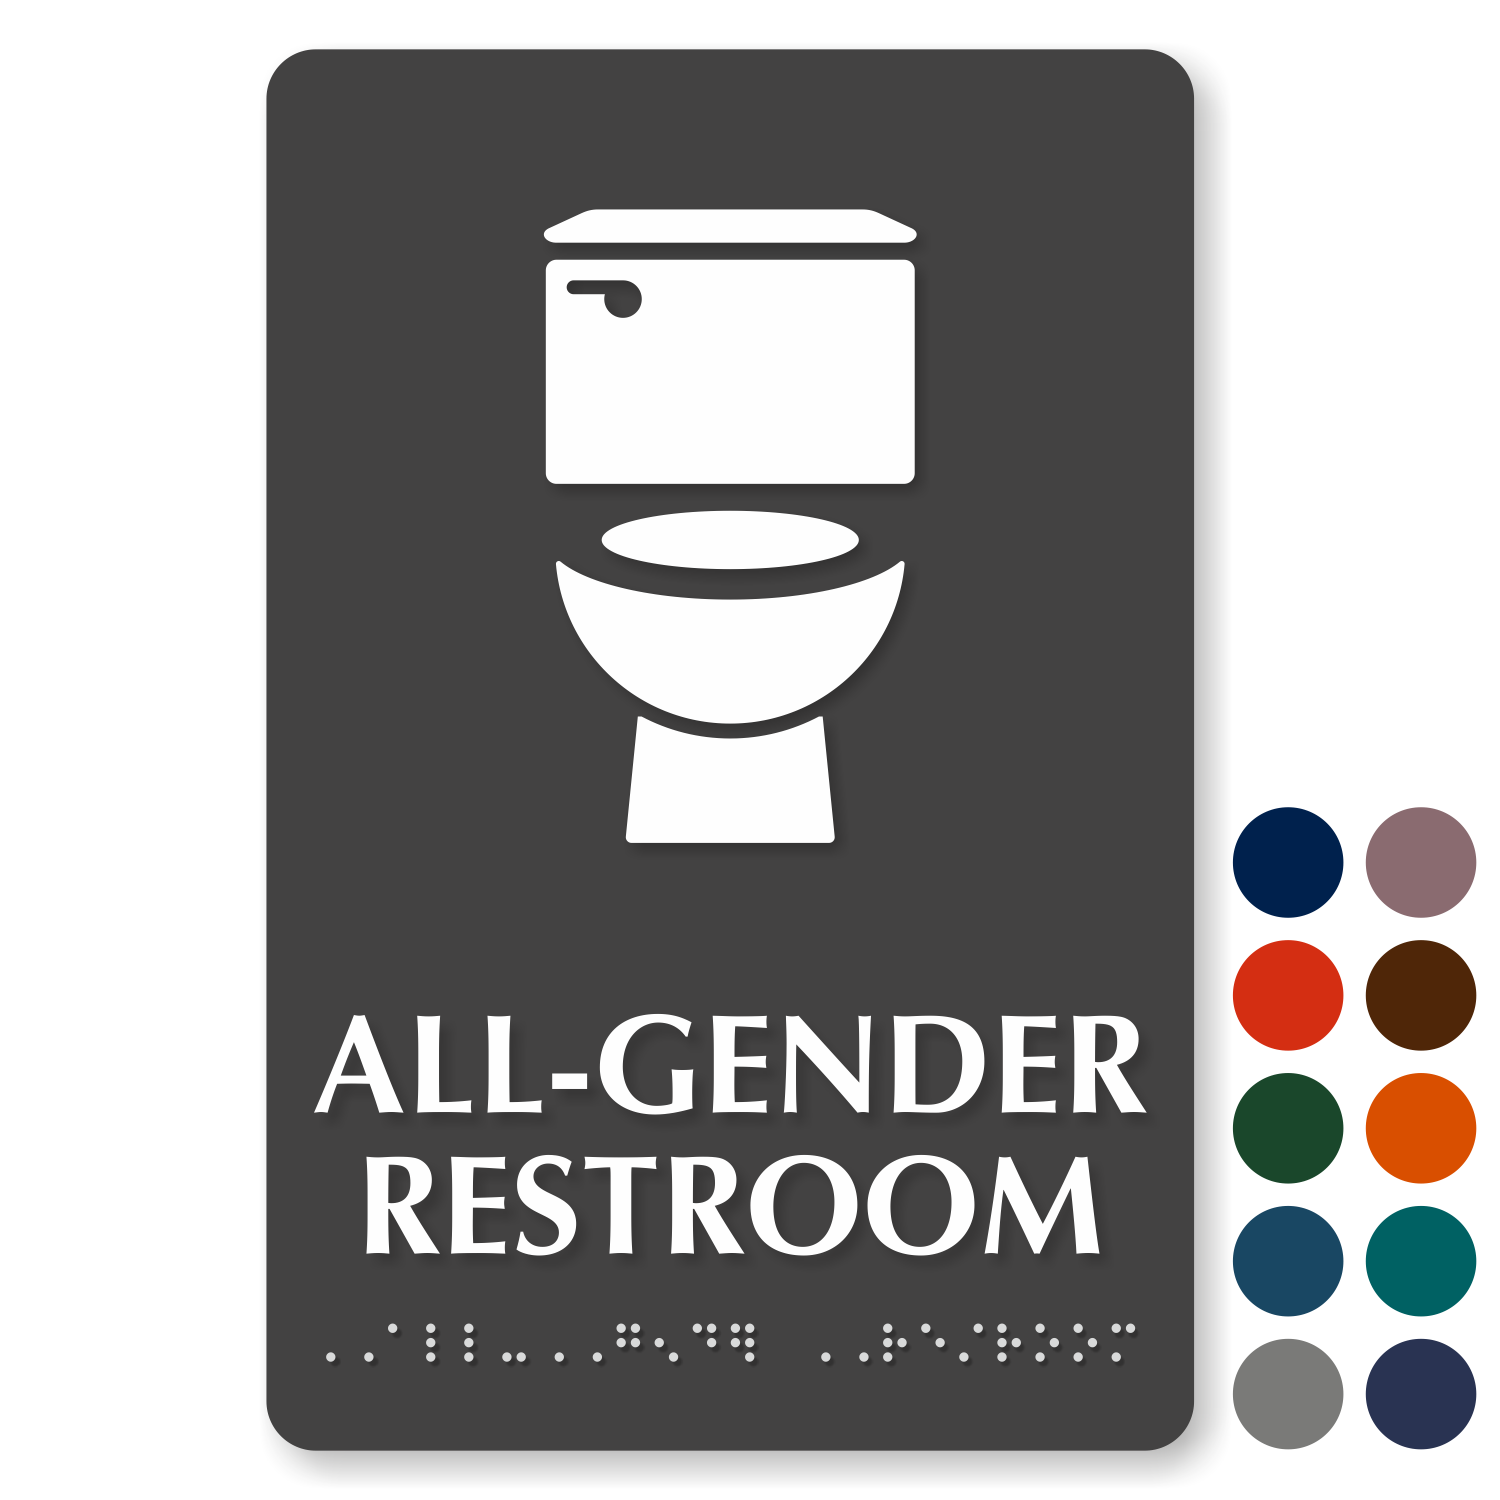 Bathroom Sign Images all-gender restroom signs | transgender restroom signs